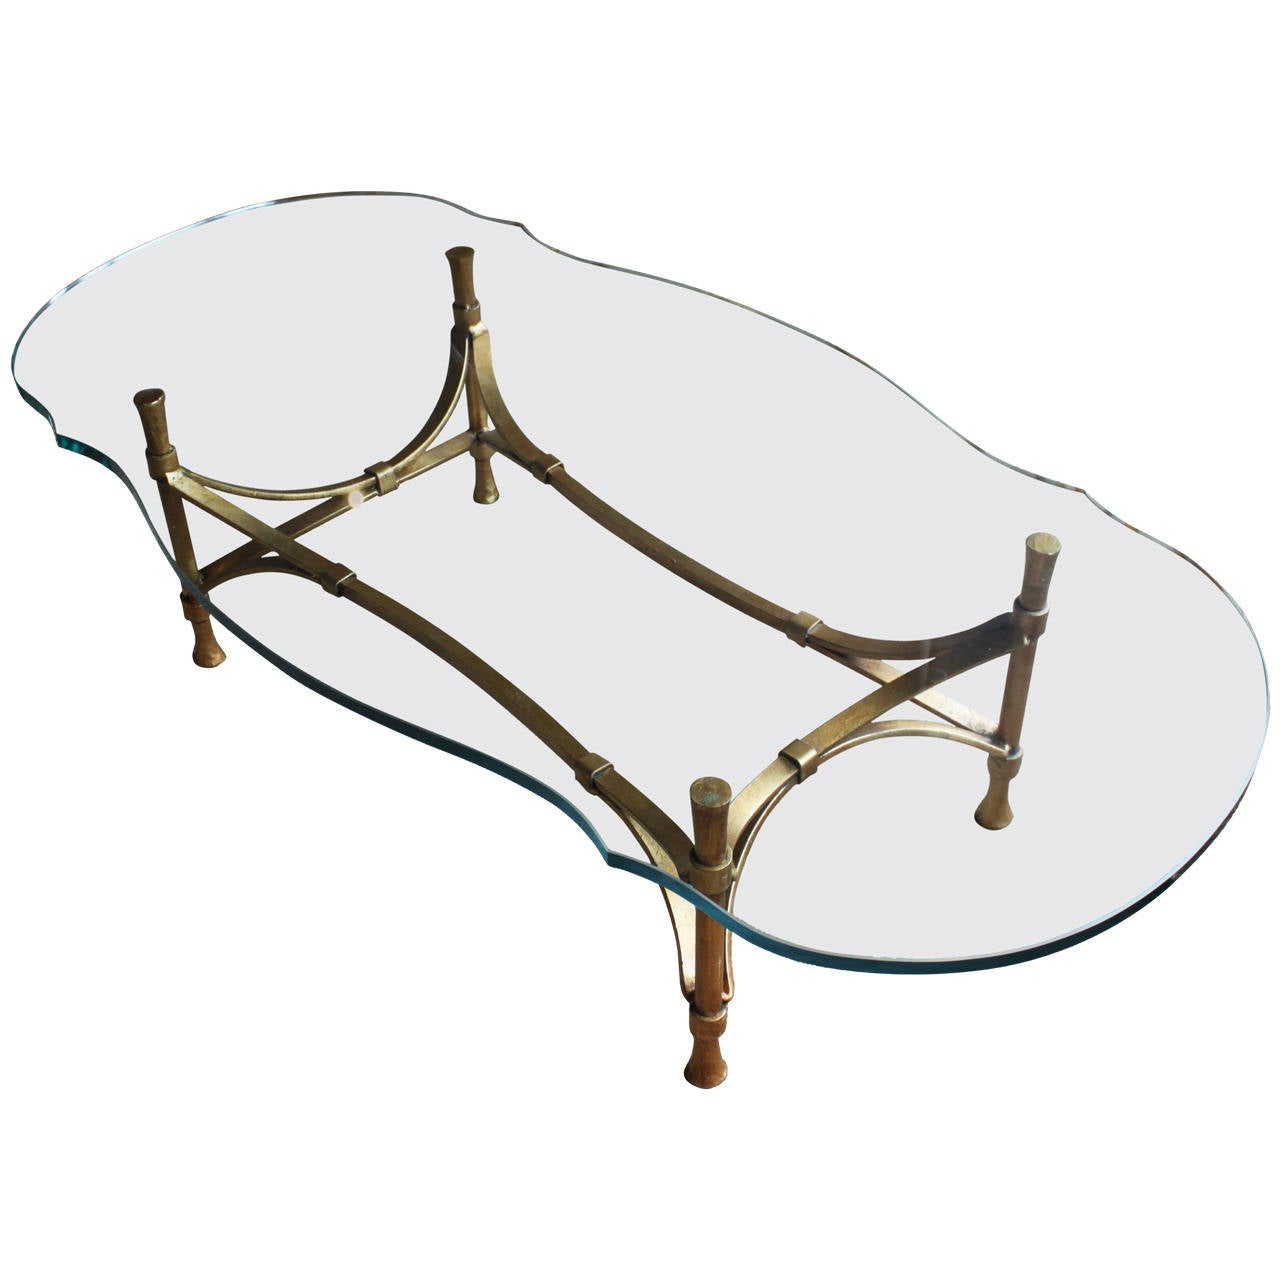 Decorator Gilt Wrought Iron Coffee Table With Cut And Rounded Glass At 1stdibs